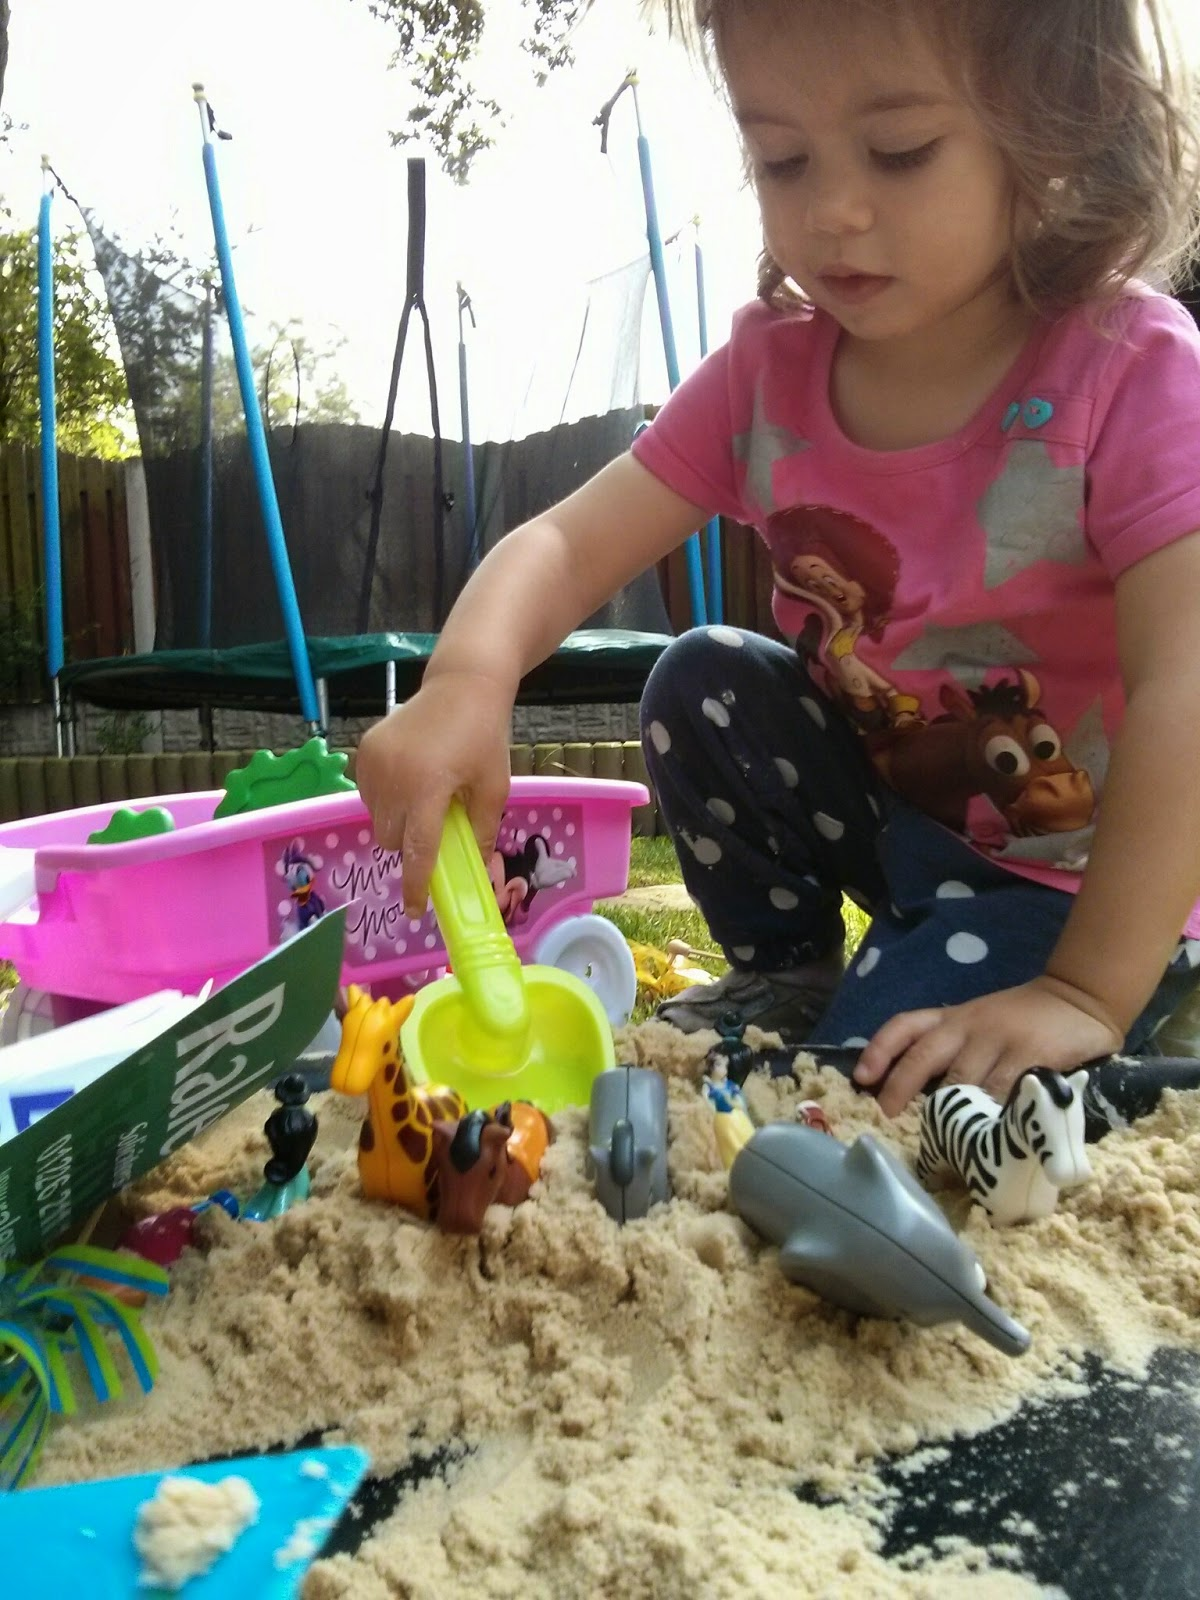 Using sand for messy play